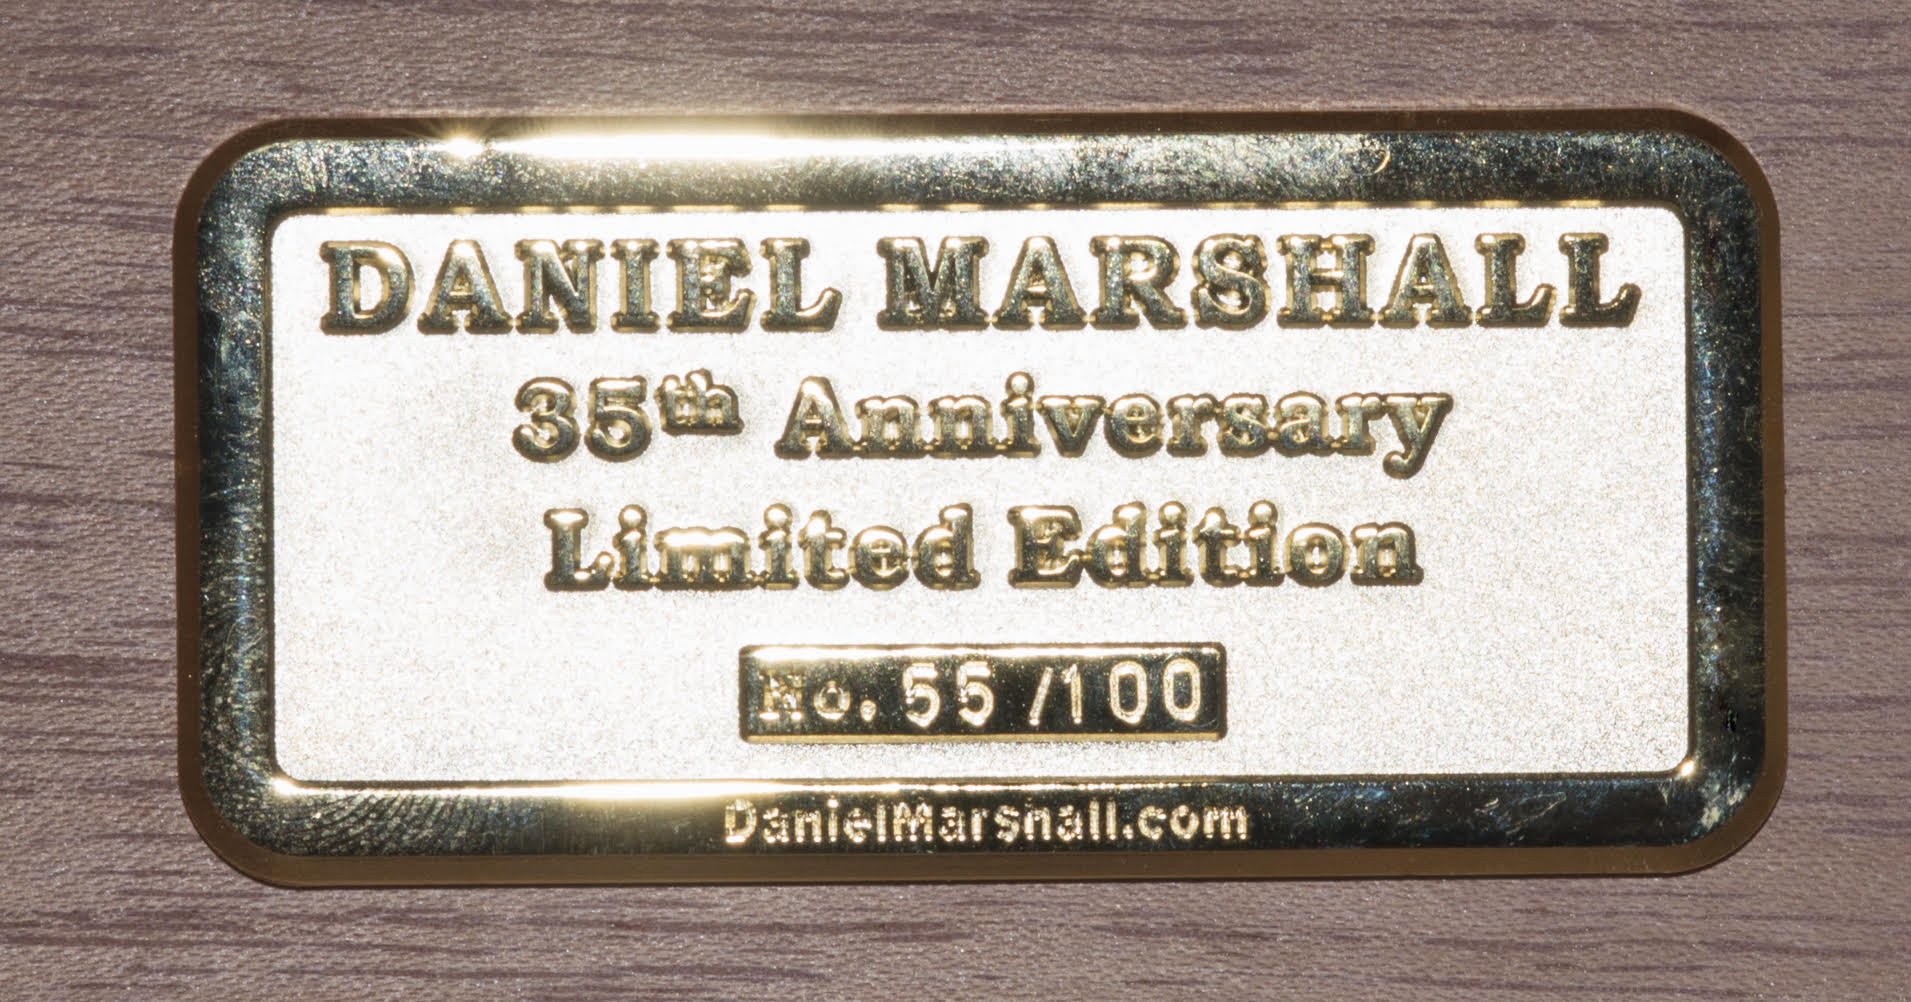 Daniel Marshall 35th Anniversary Humidor Medallion